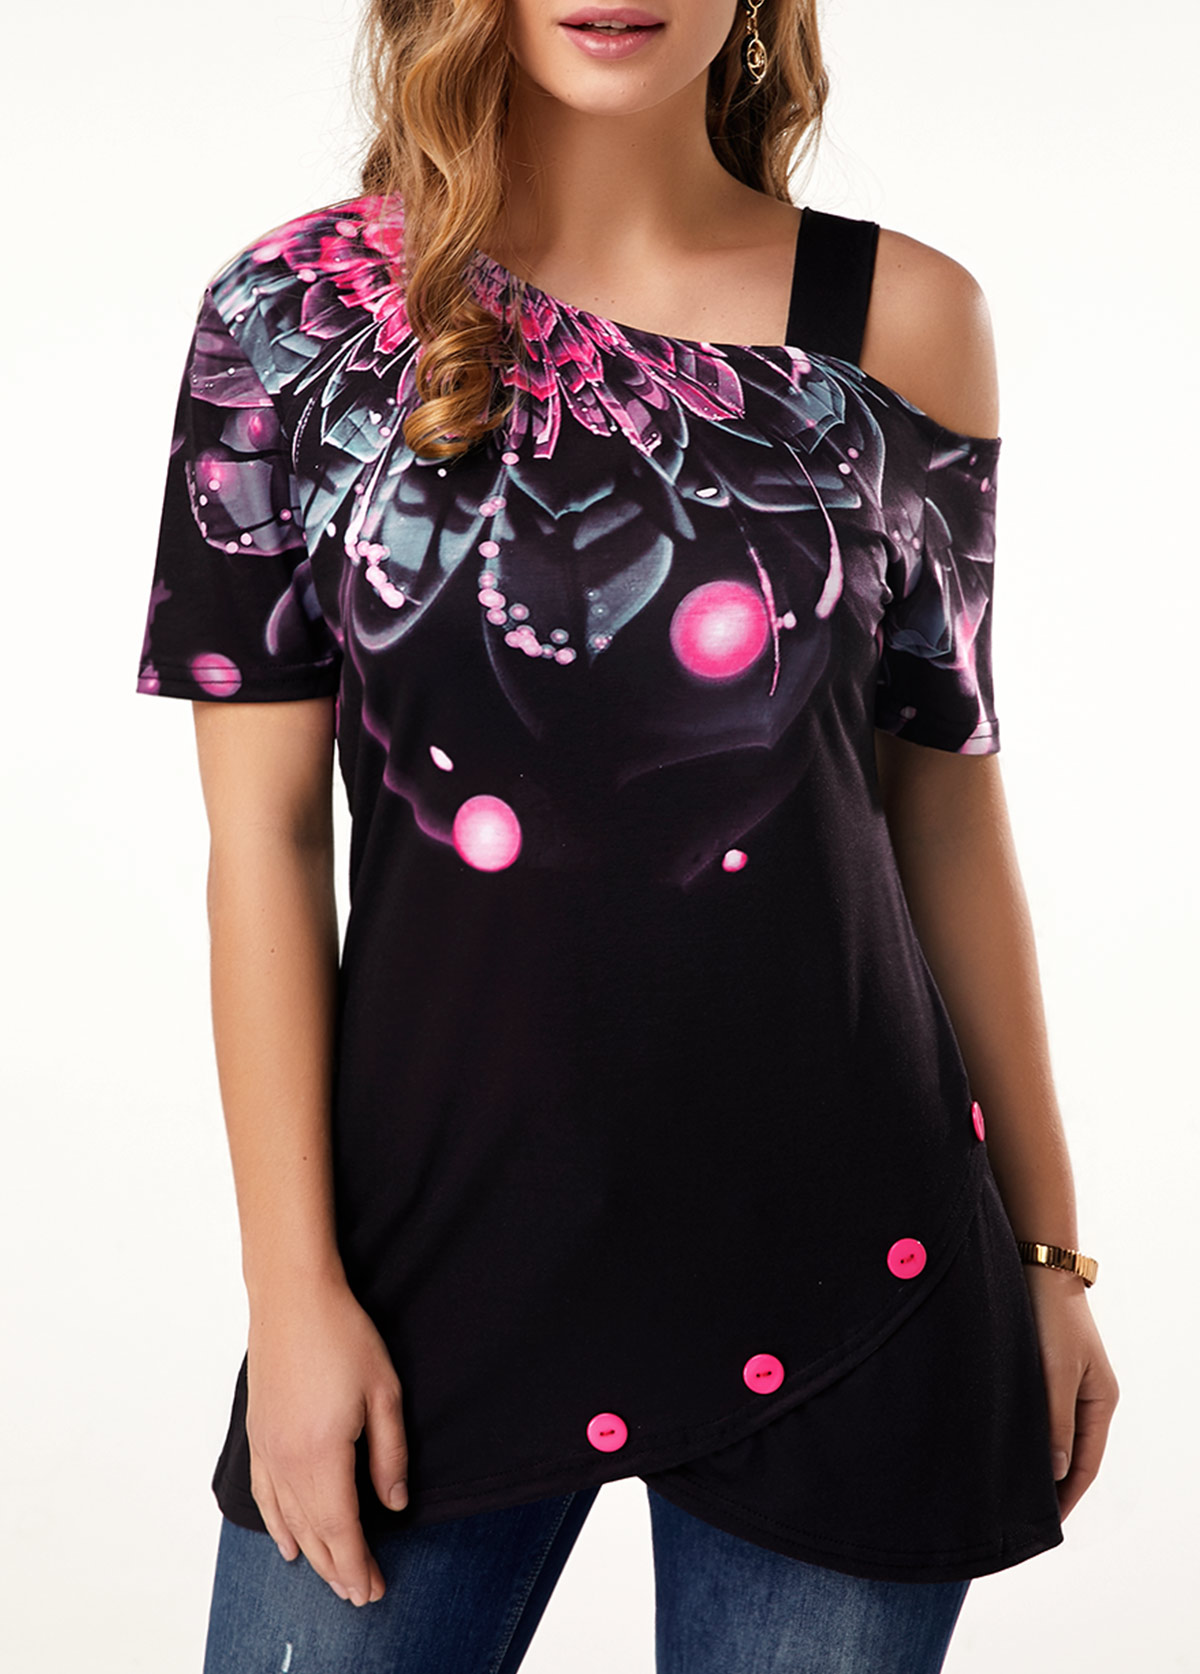 Dazzle Color Floral Print Short Sleeve T Shirt